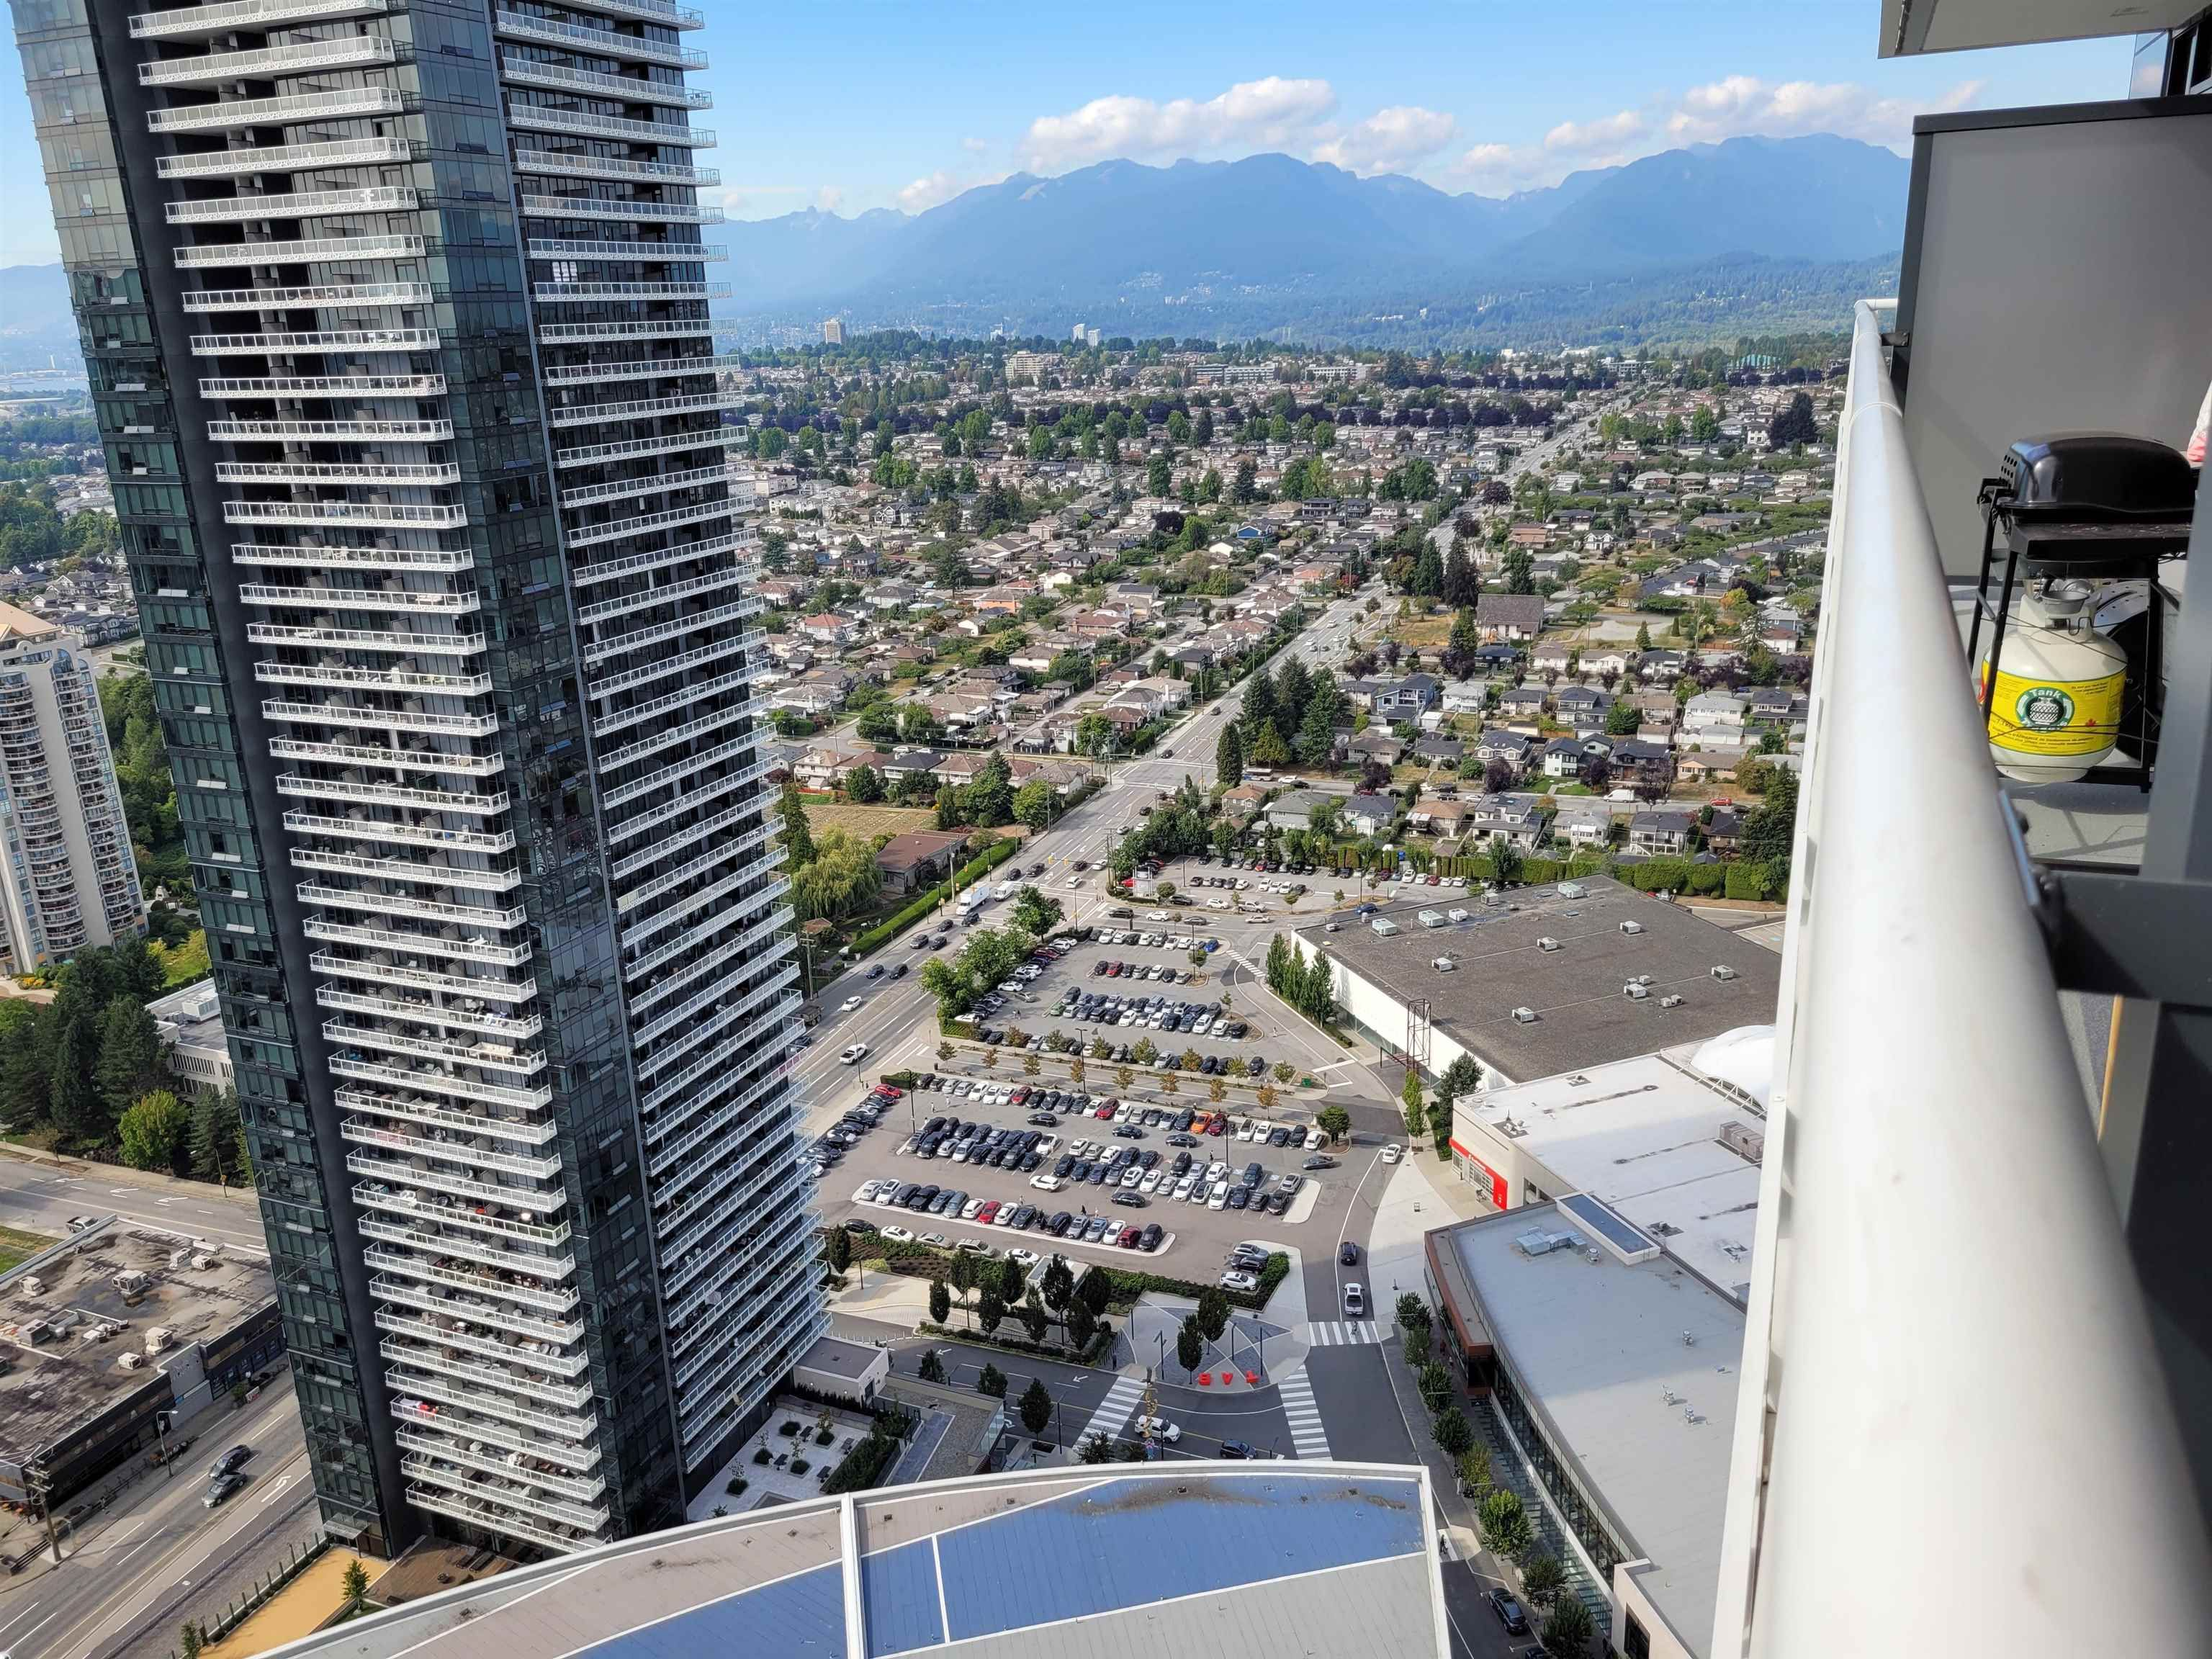 """Main Photo: 4207 1955 ALPHA Way in Burnaby: Brentwood Park Condo for sale in """"The Amazing Brentwood 2"""" (Burnaby North)  : MLS®# R2612060"""